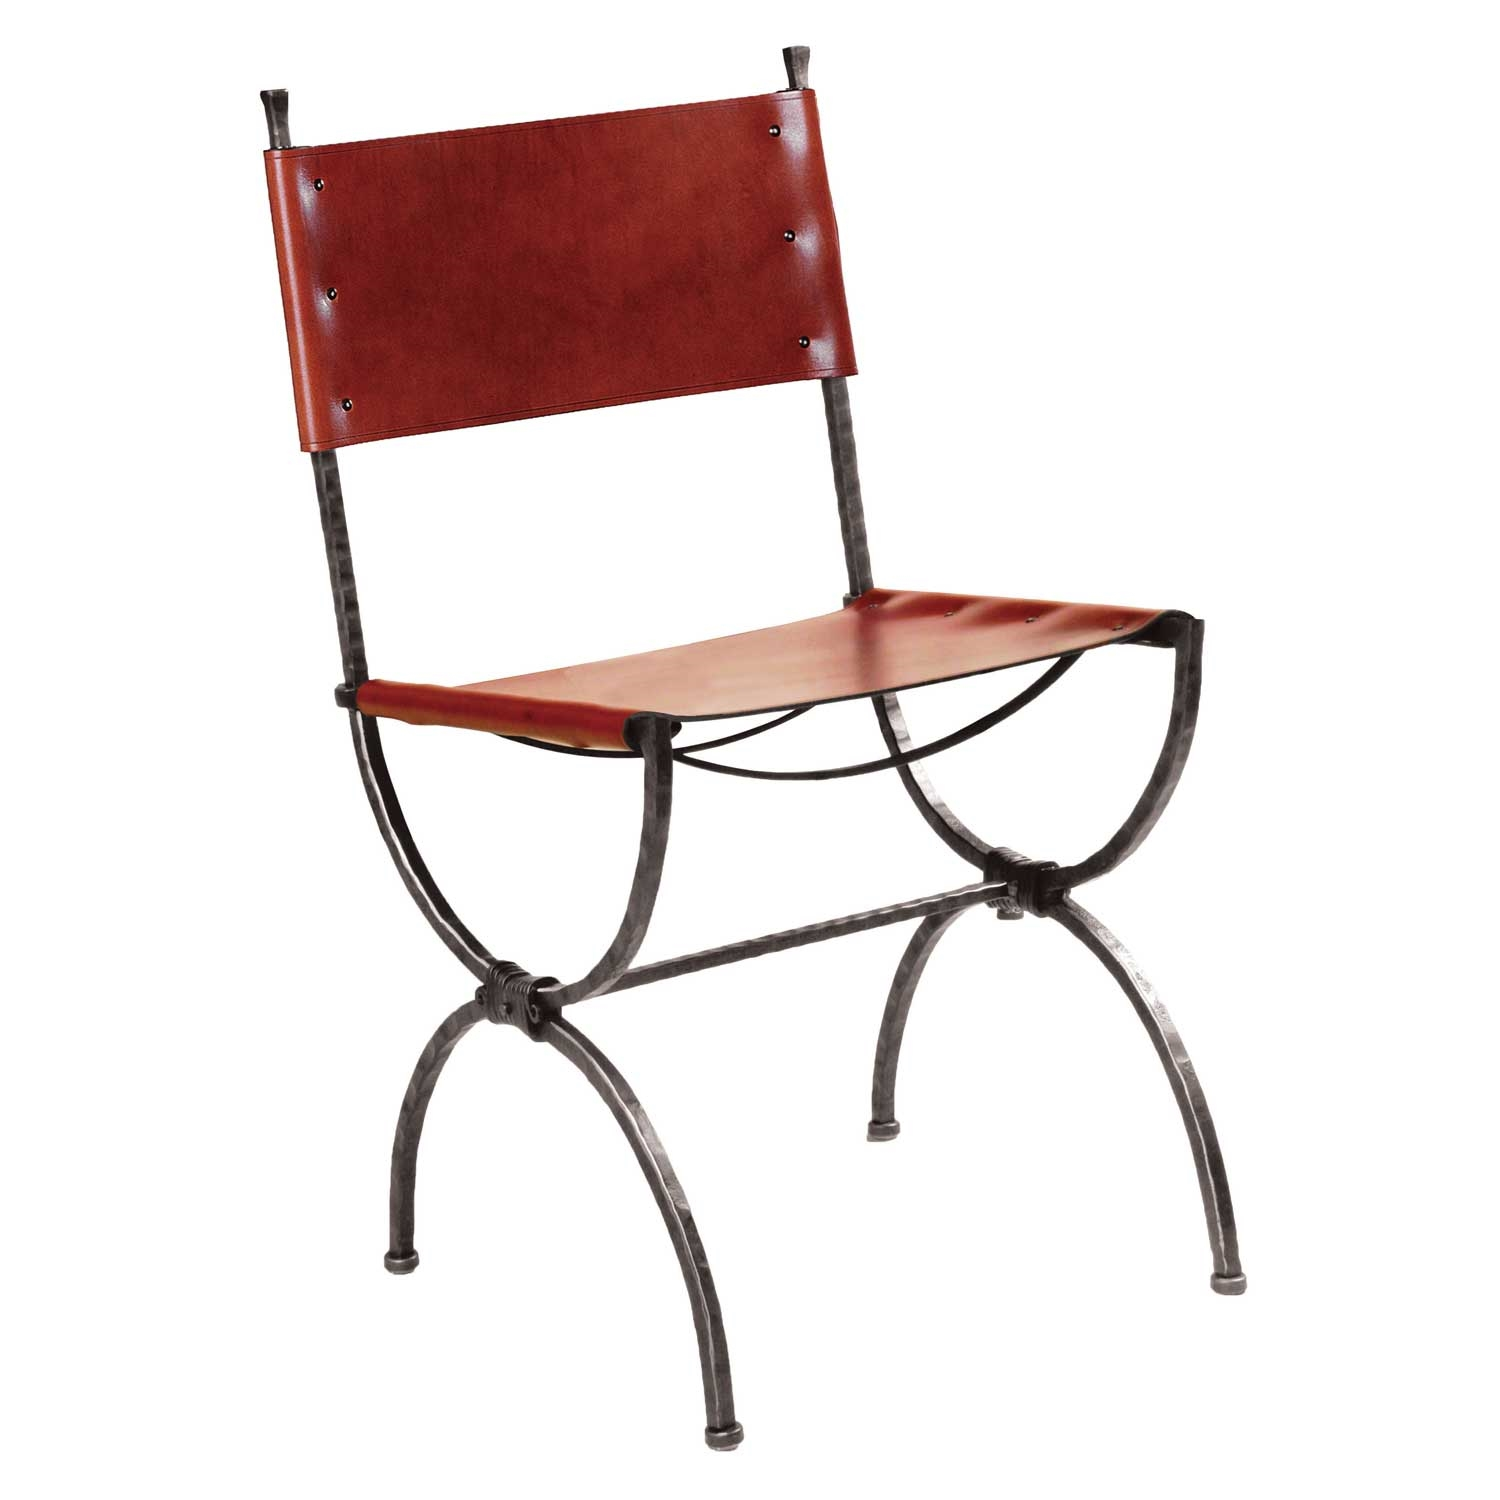 Fantastic Legacy Side Chair Charleston Forge Dining Chair Caraccident5 Cool Chair Designs And Ideas Caraccident5Info